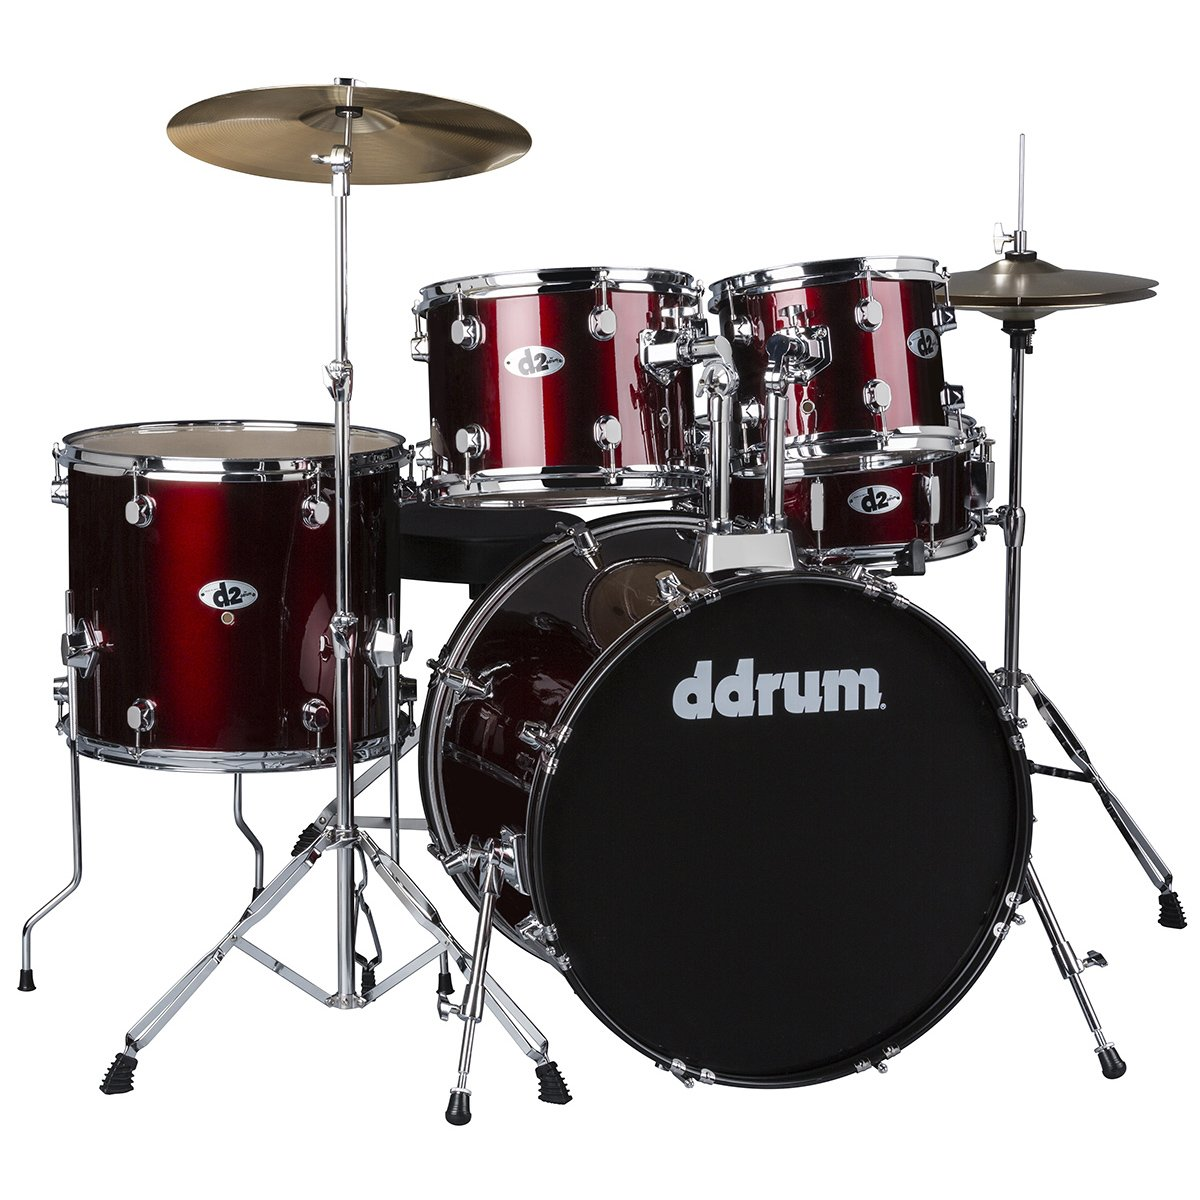 Ddrum D120 Complete 5pc. Drumset w/Cymbals and Hardware - Blood Red